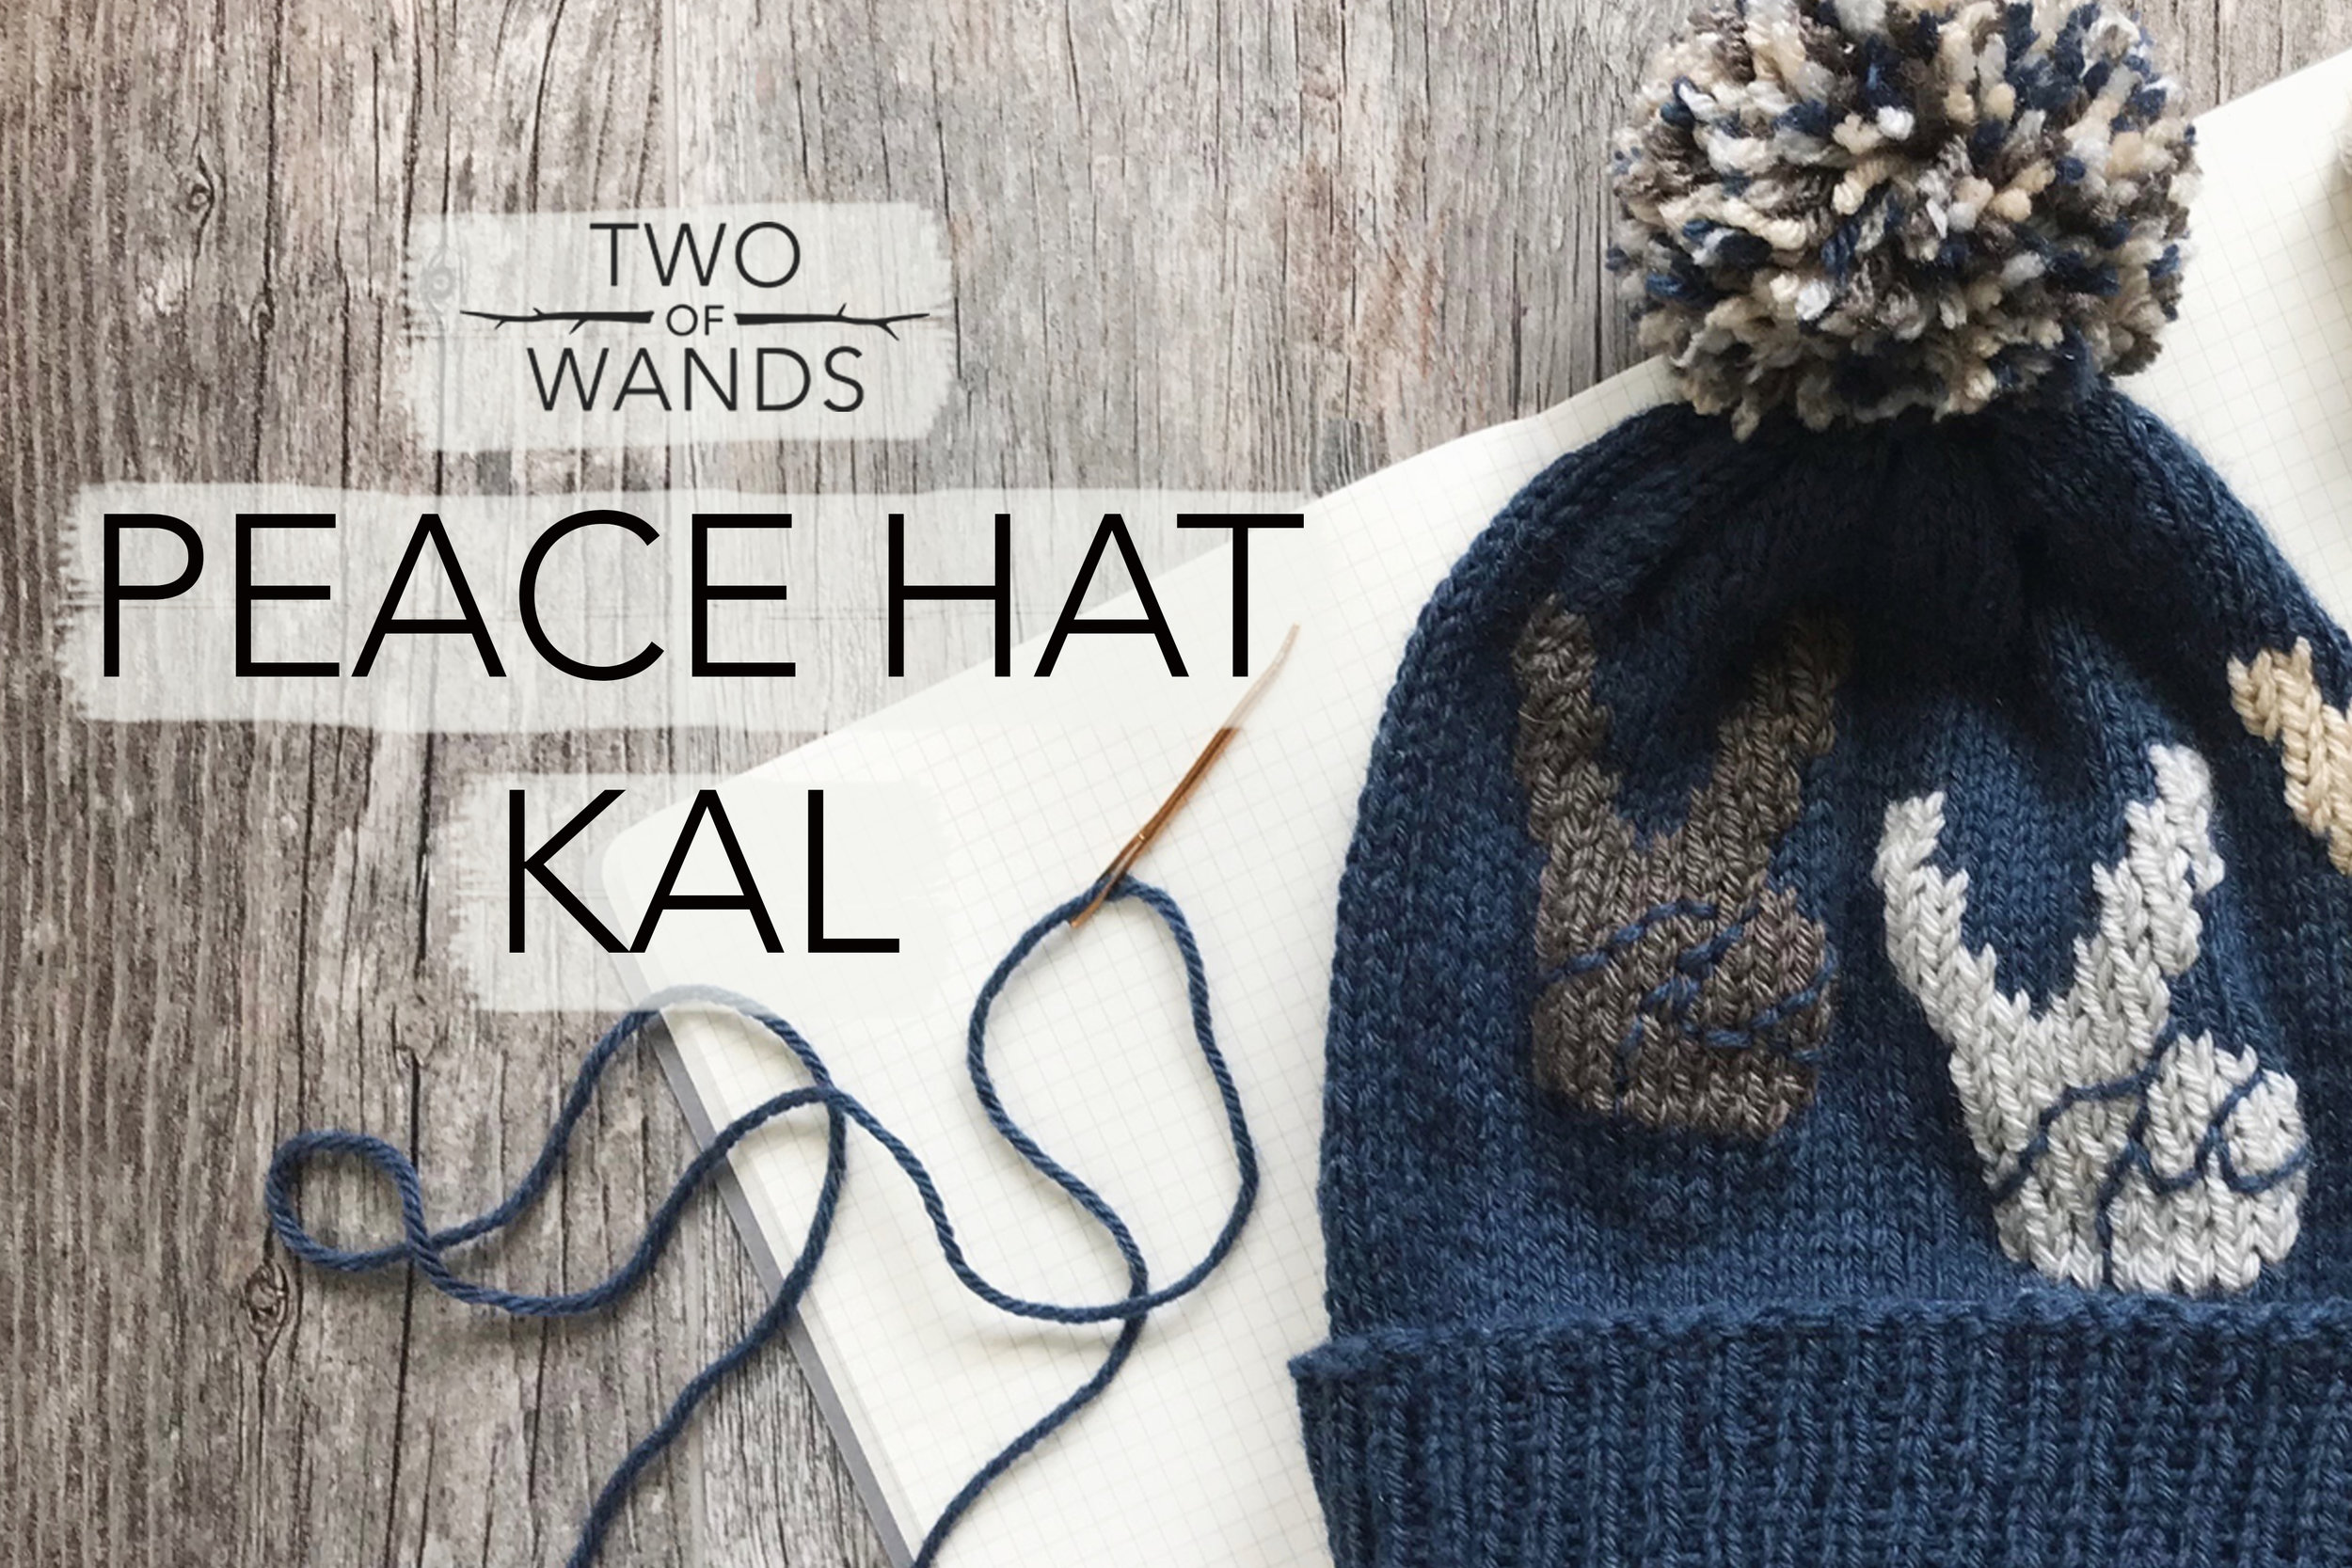 Peace Hat KAL by Two of Wands